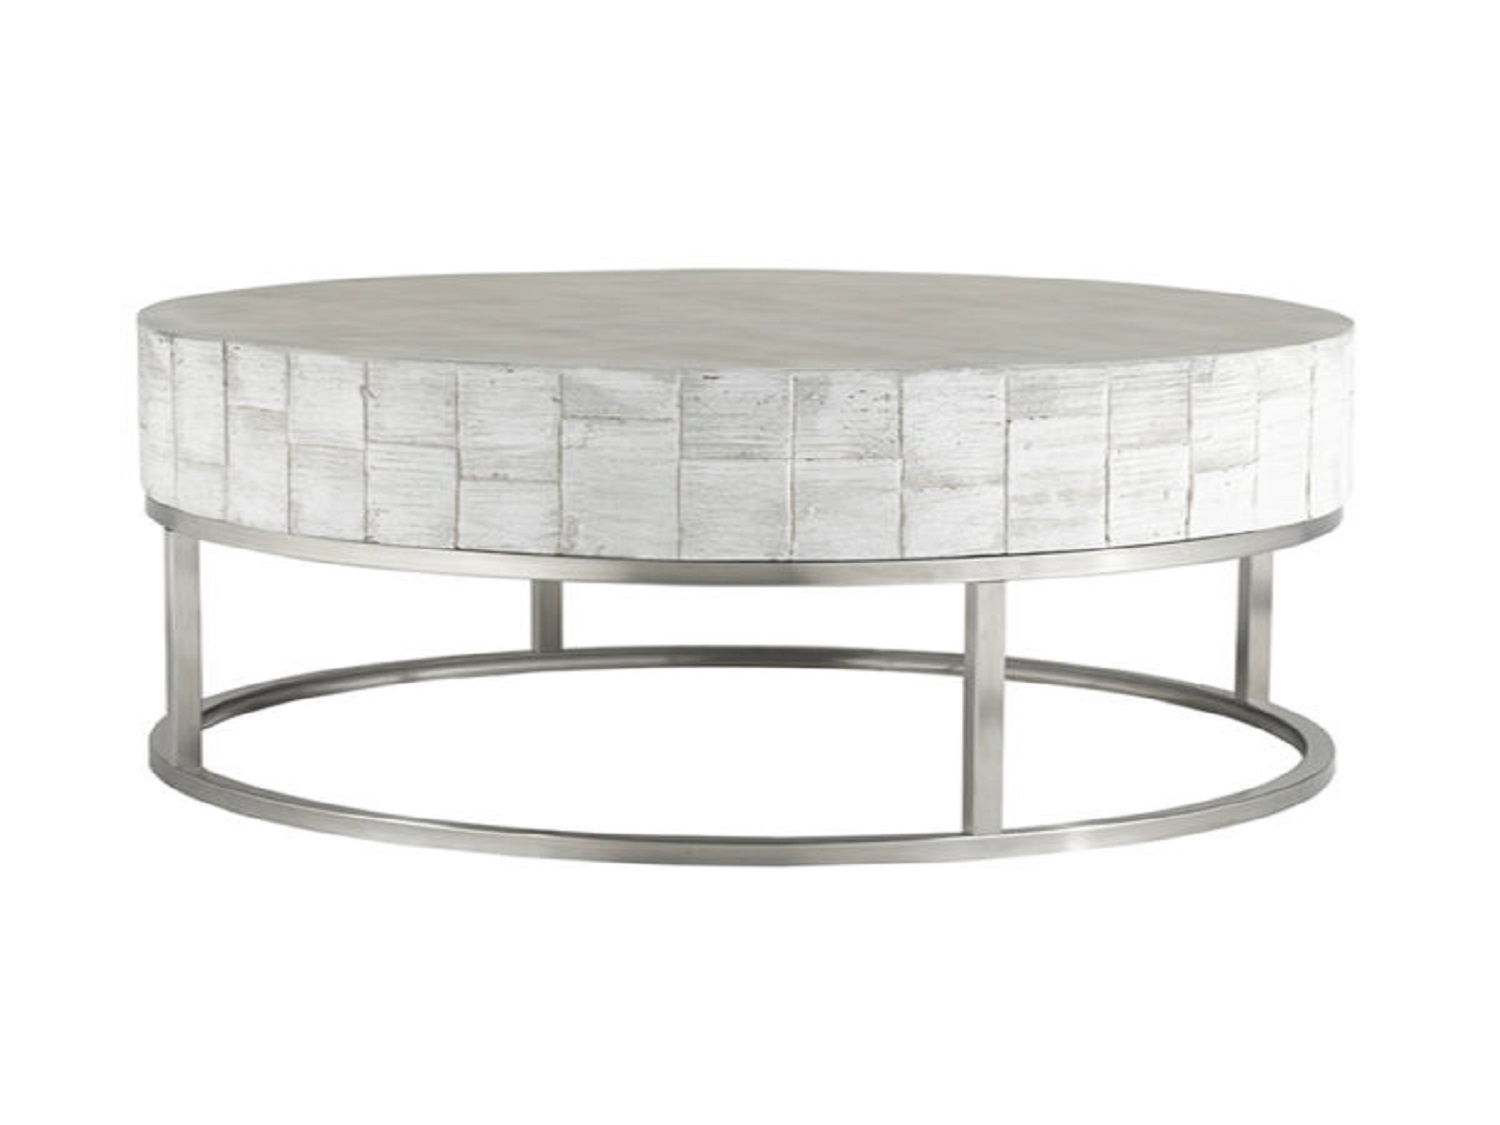 Nottingham Round Coffee Table, 100122, Cofee Table by Midha Furniture to Brampton, Mississauga, Etobicoke, Toronto, Scraborough, Caledon, Oakville, Markham, Ajax, Pickering, Oshawa, Richmondhill, Kitchener, Hamilton and GTA area